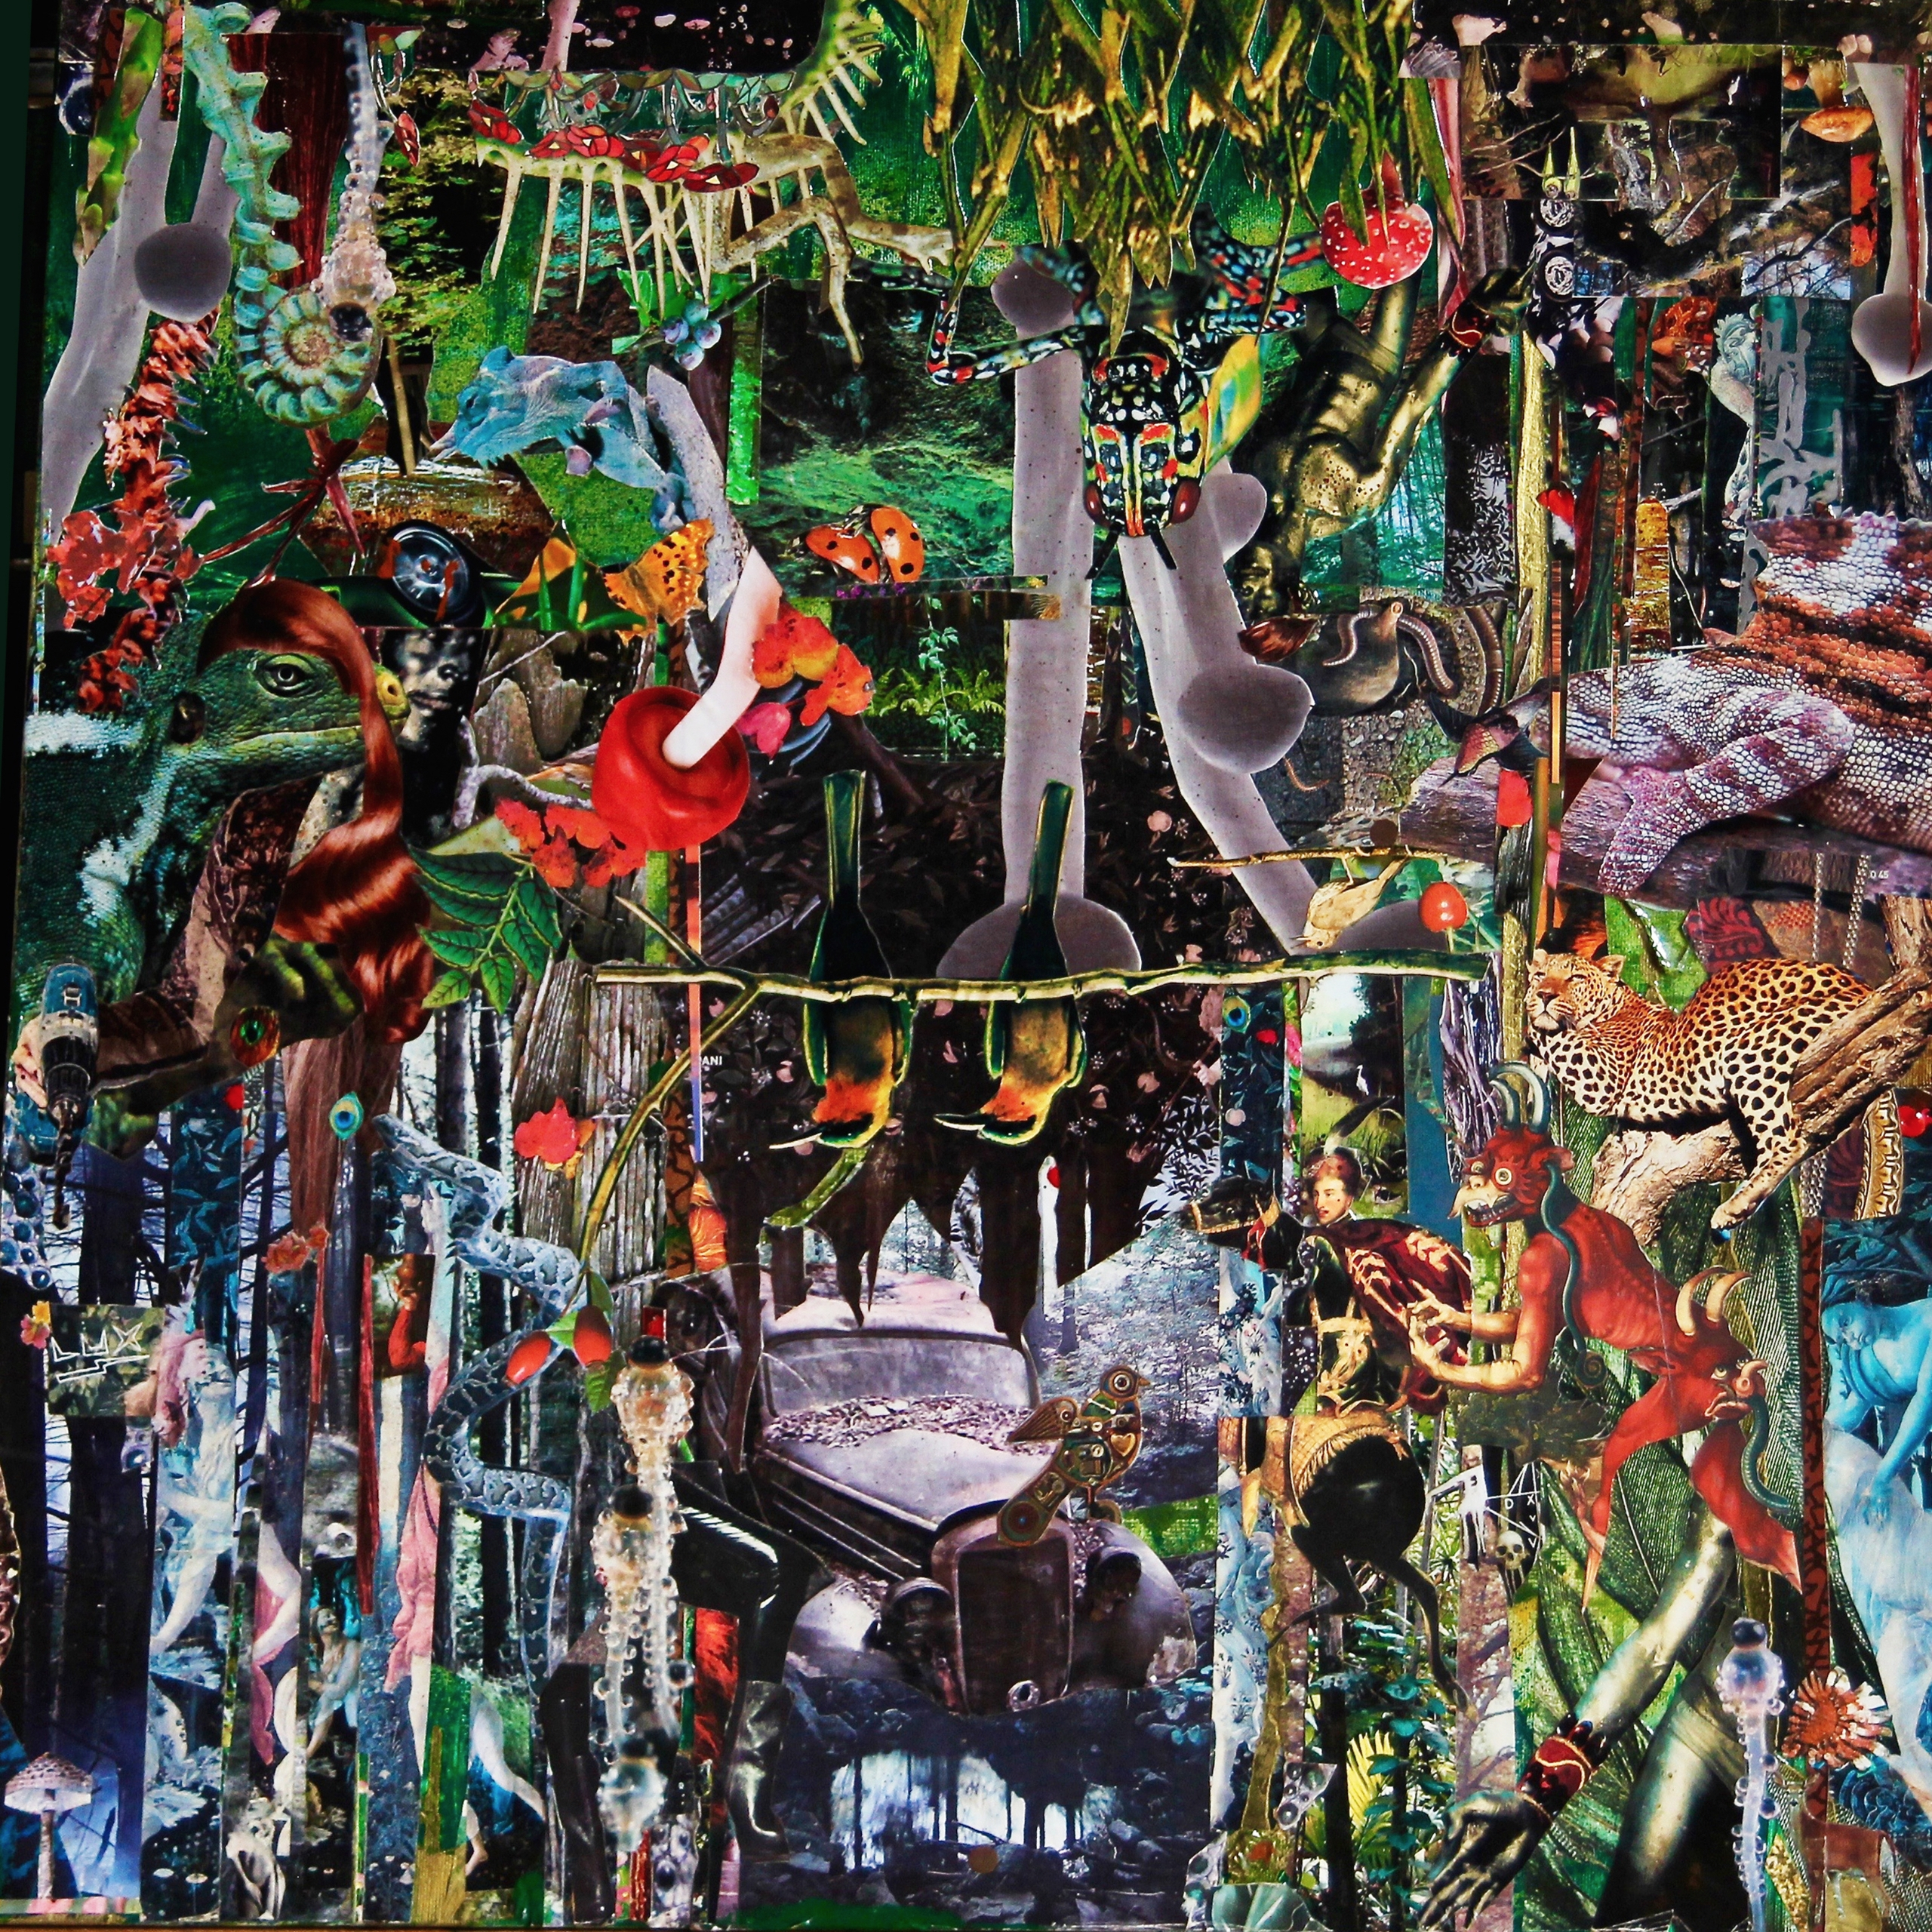 forest 2017 (60x60) pj pANcMA - collage - pancma | ello